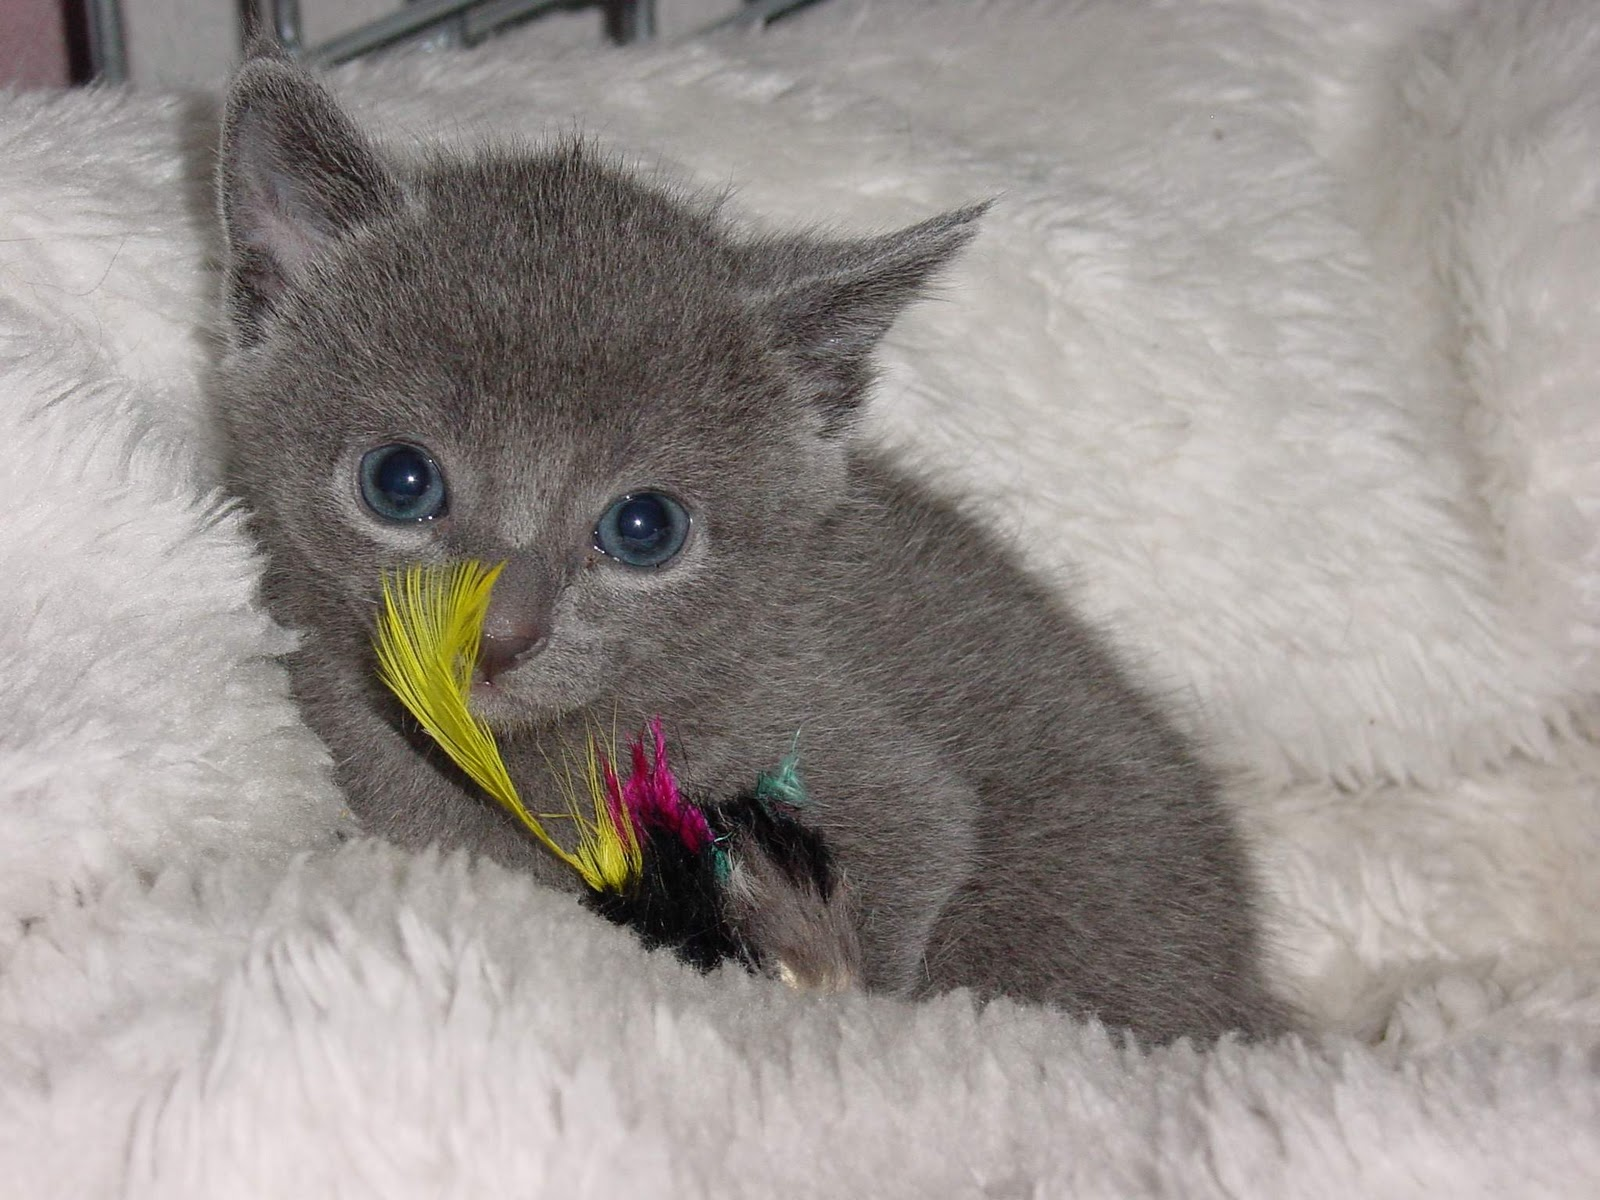 RUSSIAN BLUE CATS, by Jason ~ thePiperSHIHTZU